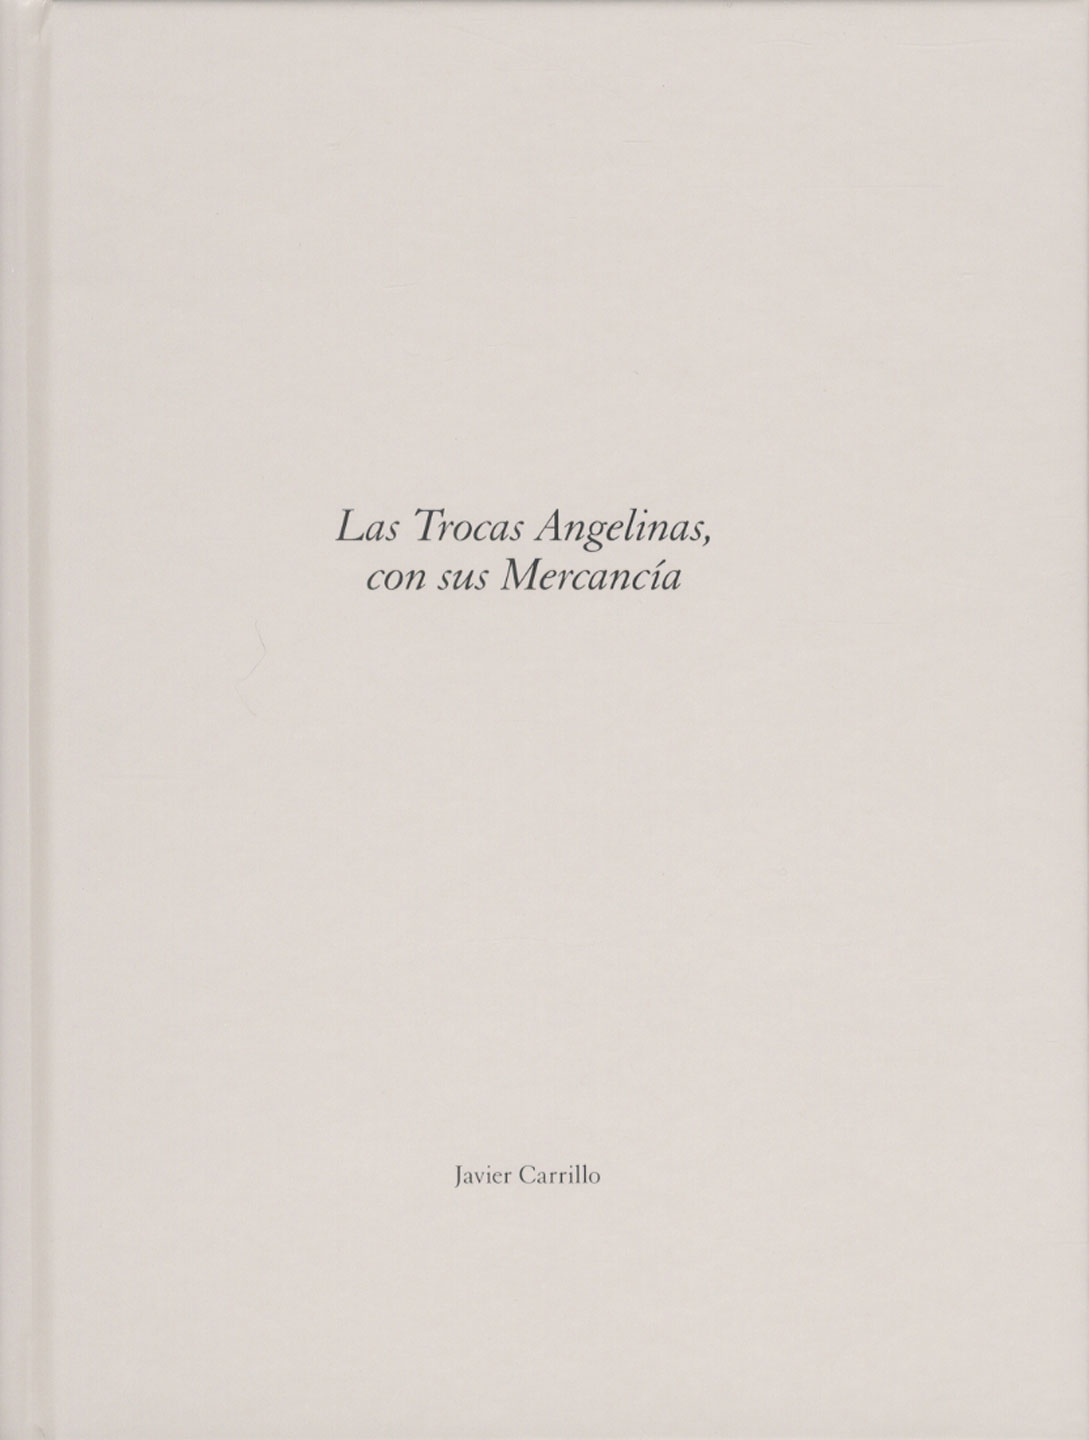 Javier Carrillo: Las Trocas Angelinas, con sus Mercancía (One Picture Book #97), Limited Edition (with Print)